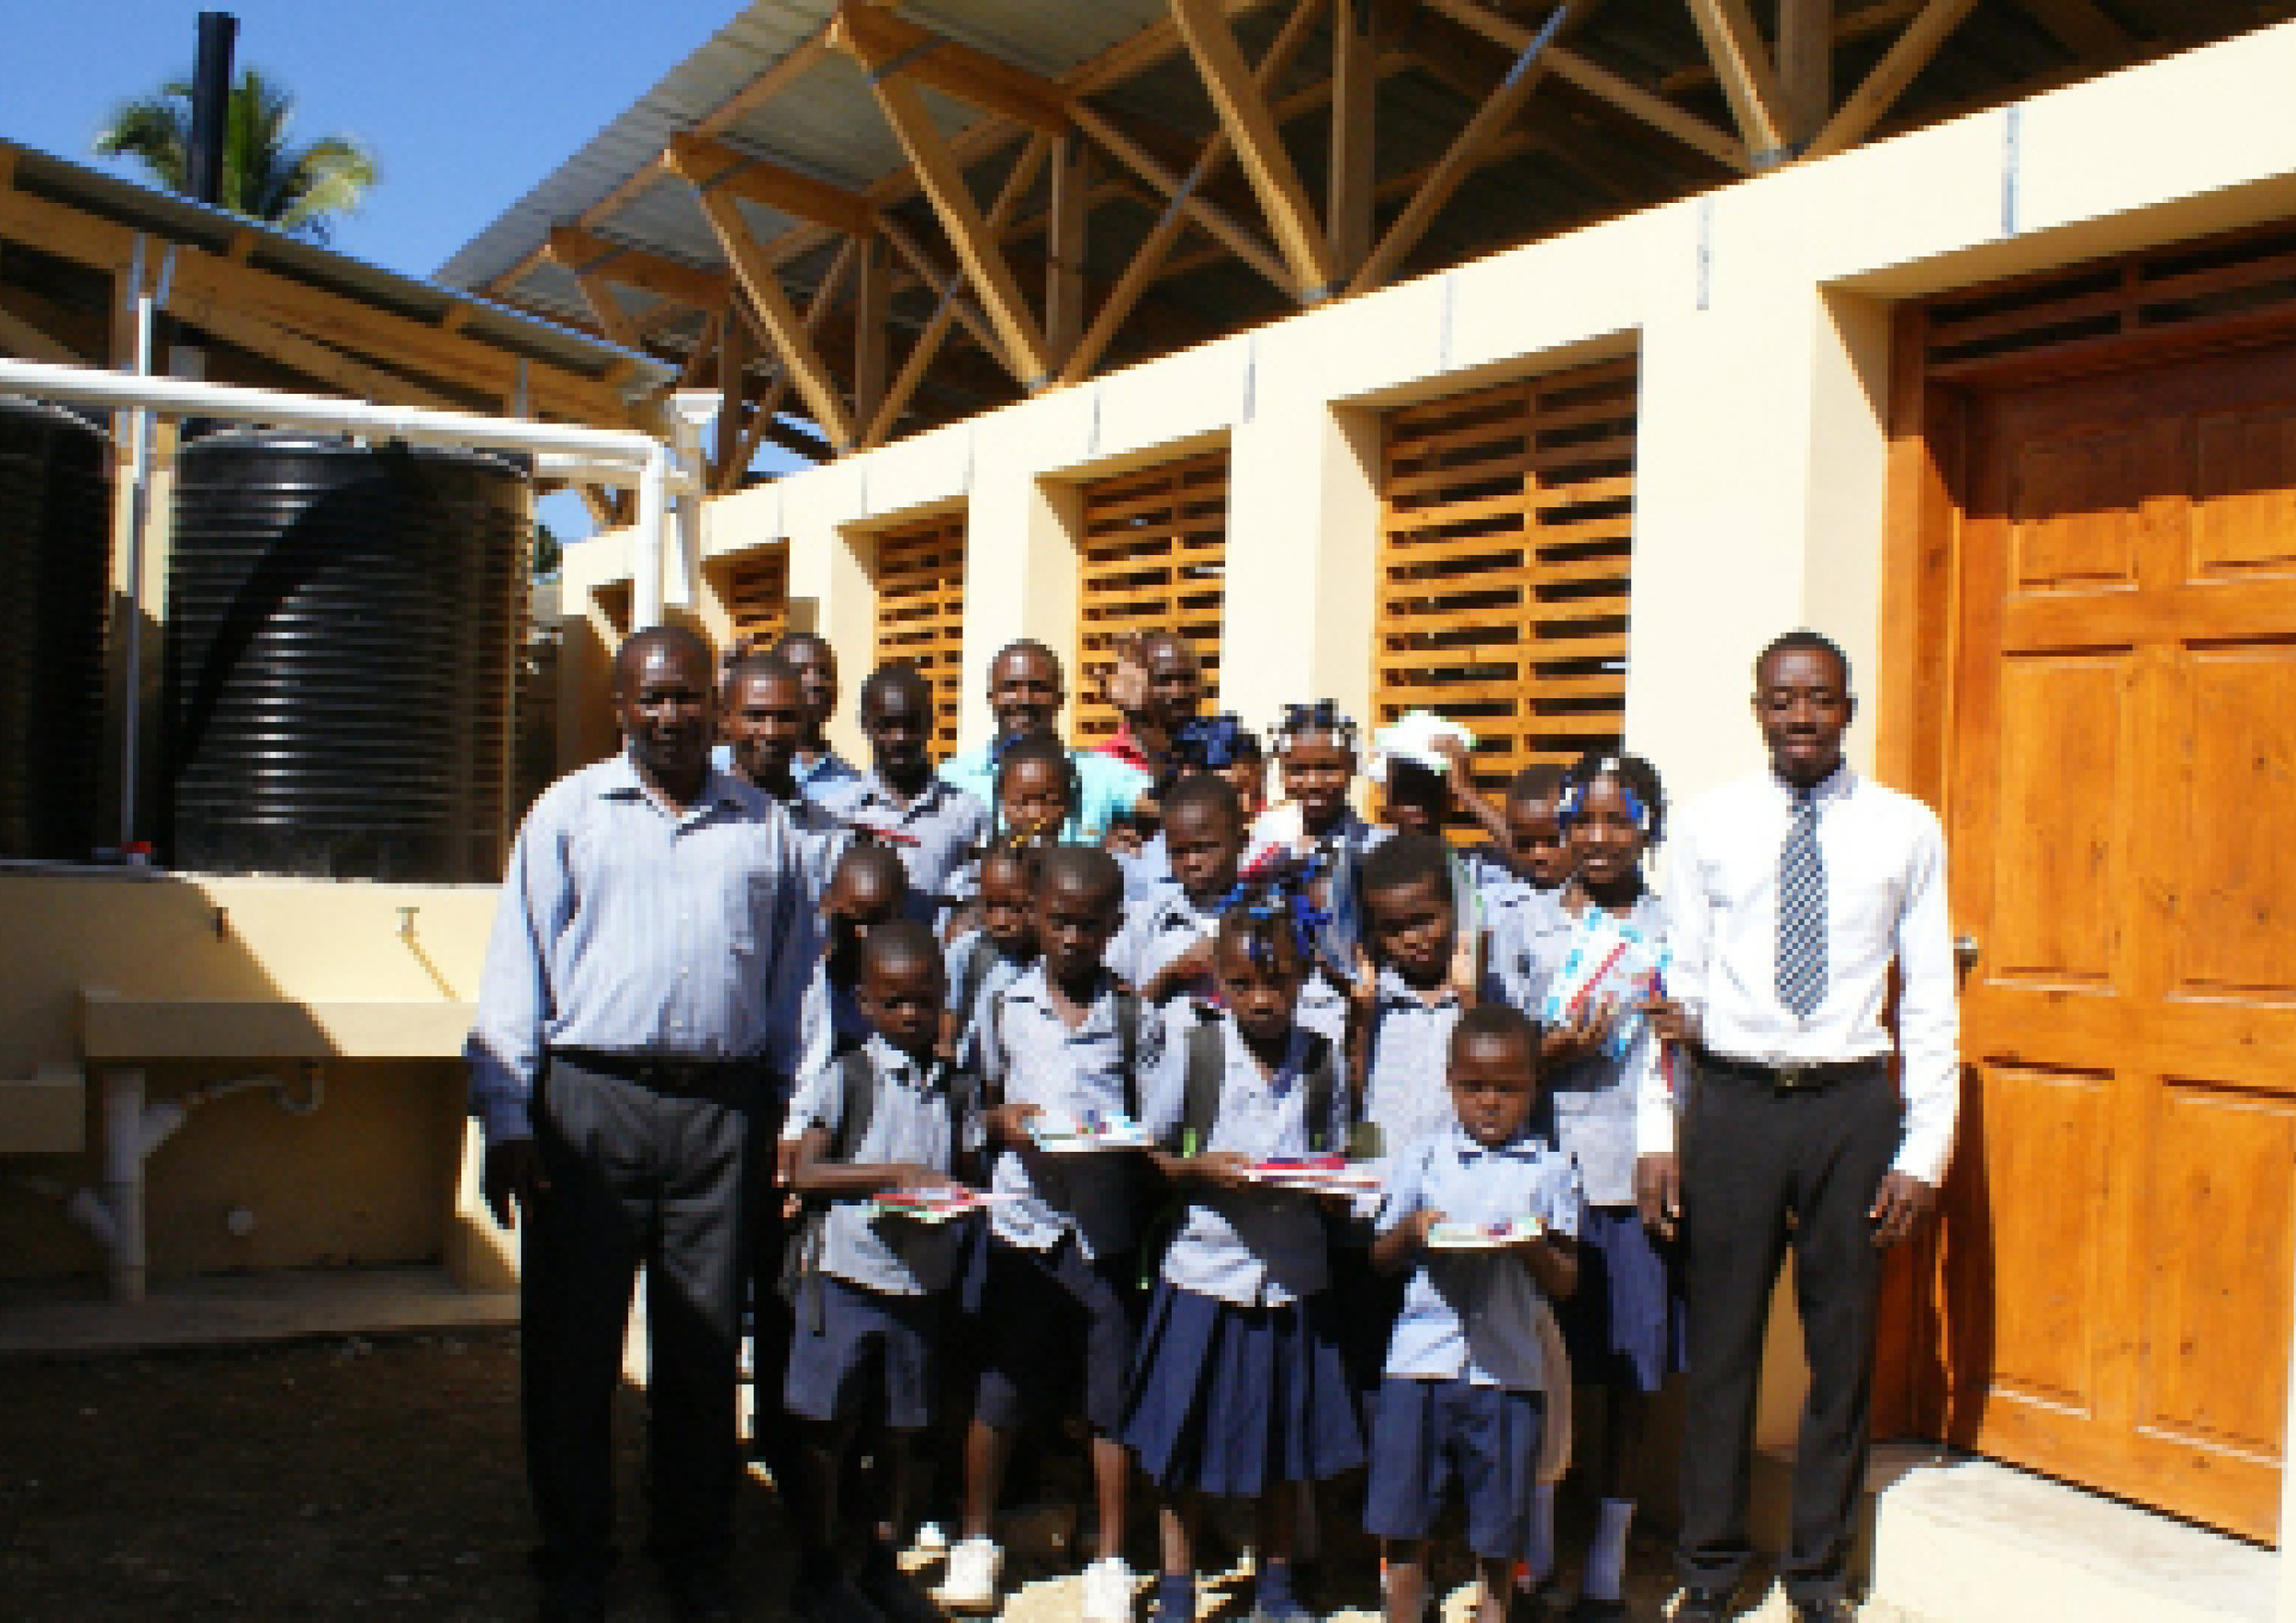 HAITI WATER & SANITATION PROJECTS - HINCHE & MALTE PERALTE / HAITI